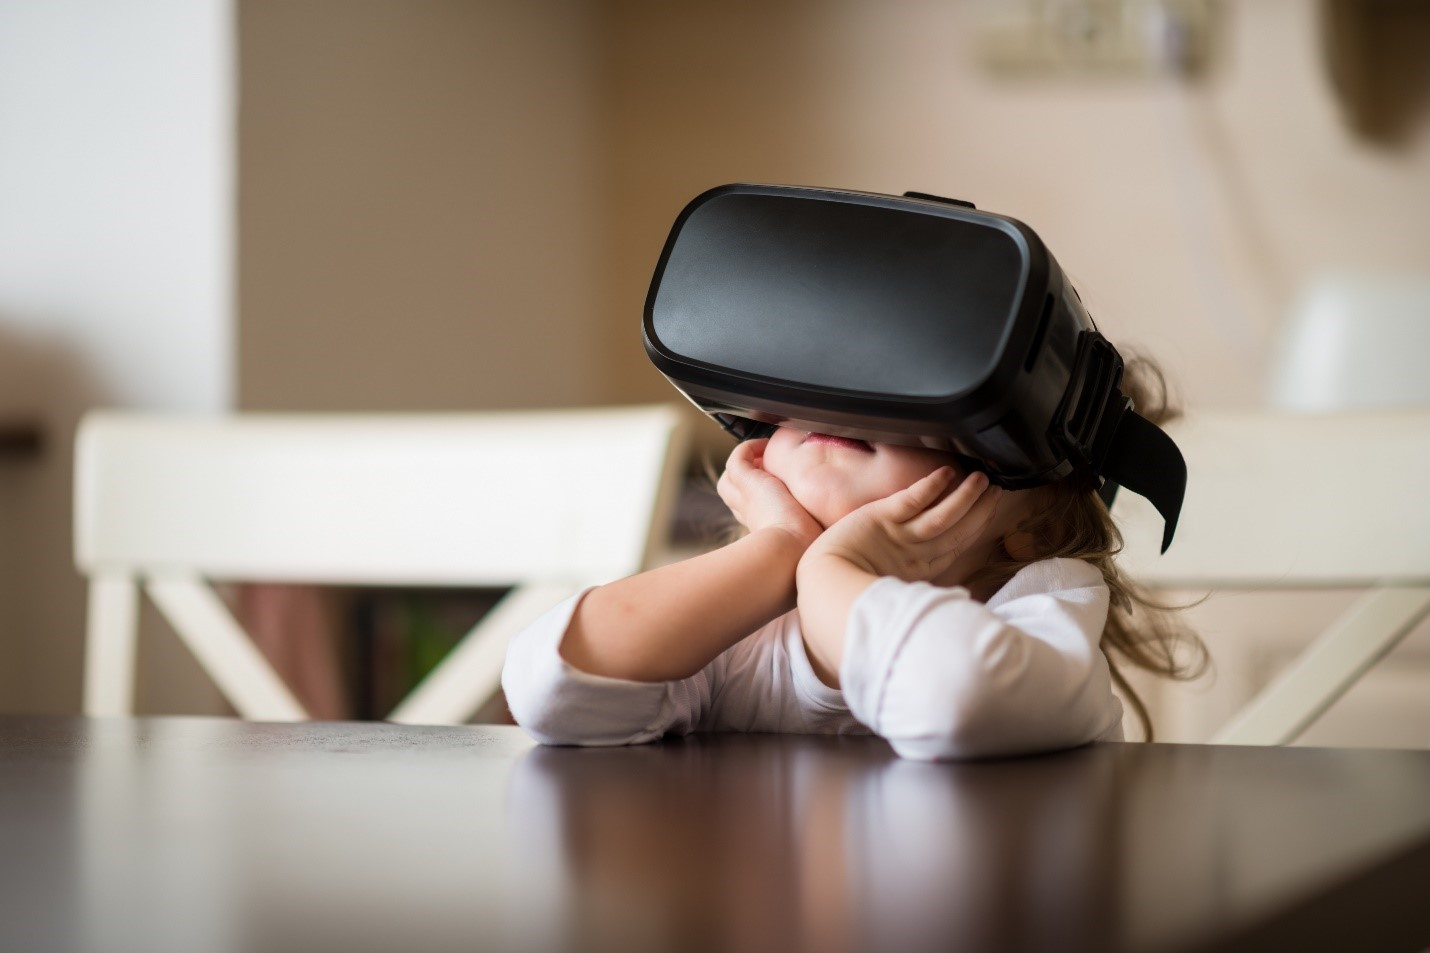 Learning solutions, Learning, Technology, Virtual reality